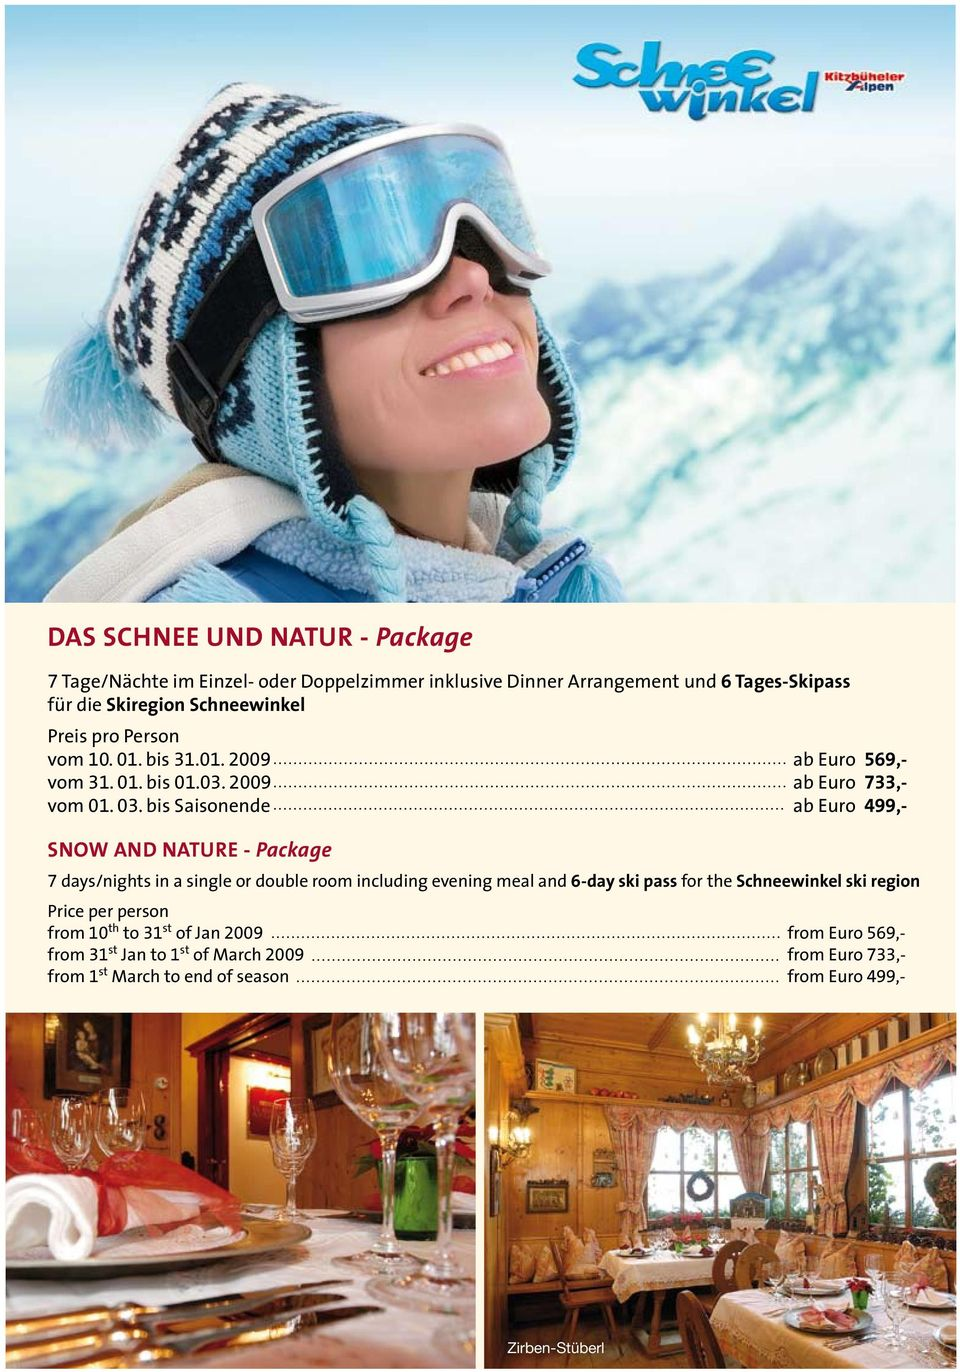 bis Saisonende ab Euro 499,- SNOW AND NATURE - Package 7 days/nights in a single or double room including evening meal and 6-day ski pass for the